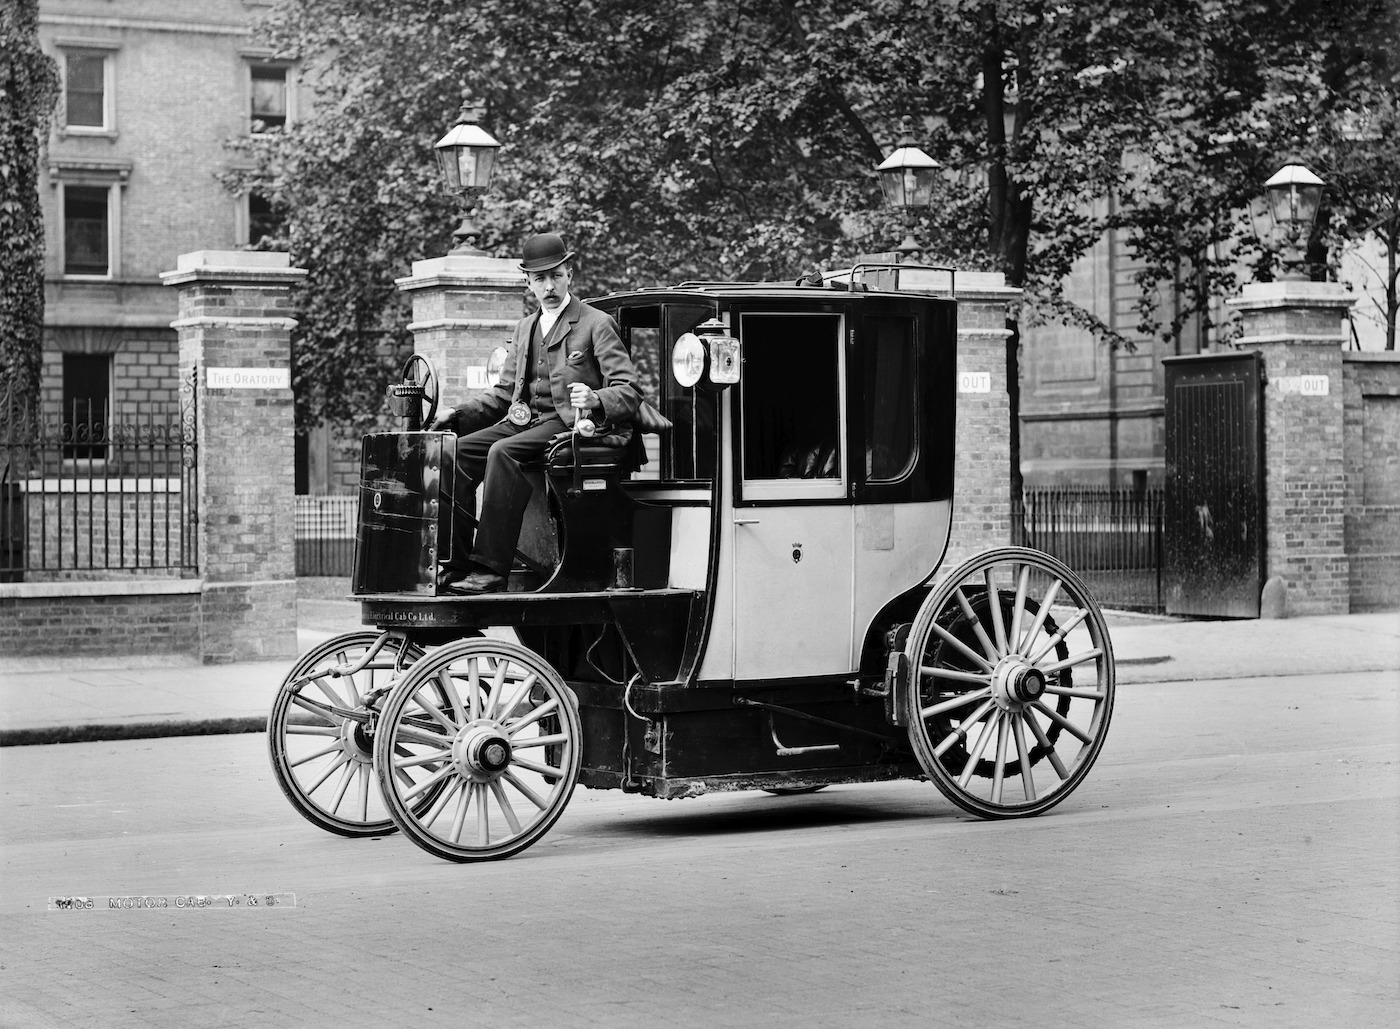 Black and white photo of an old cab on the street.